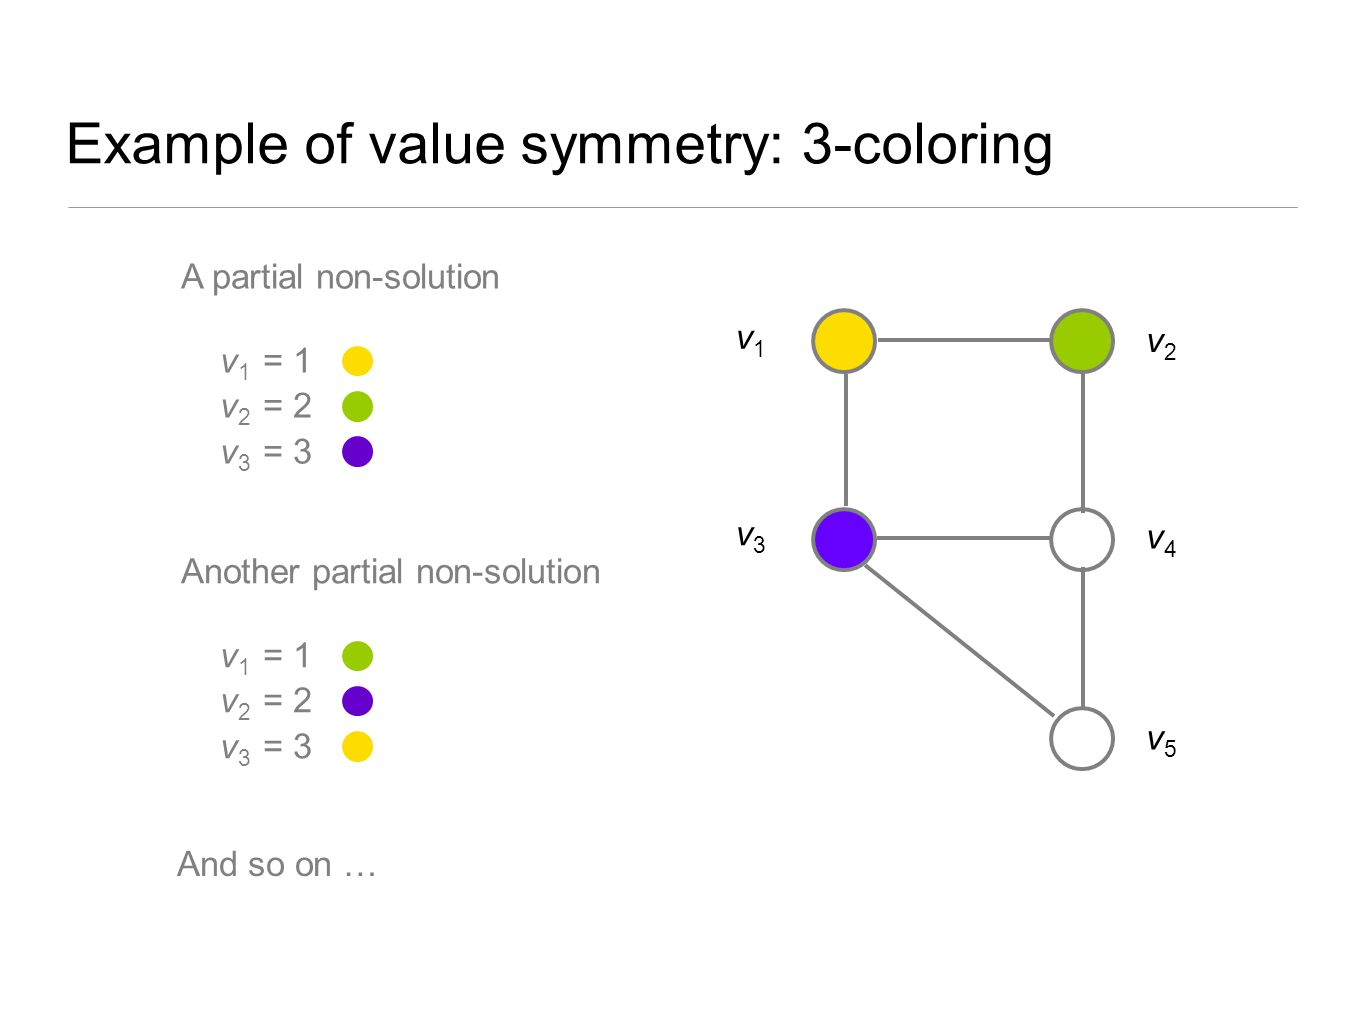 Example of value symmetry: 3-coloring